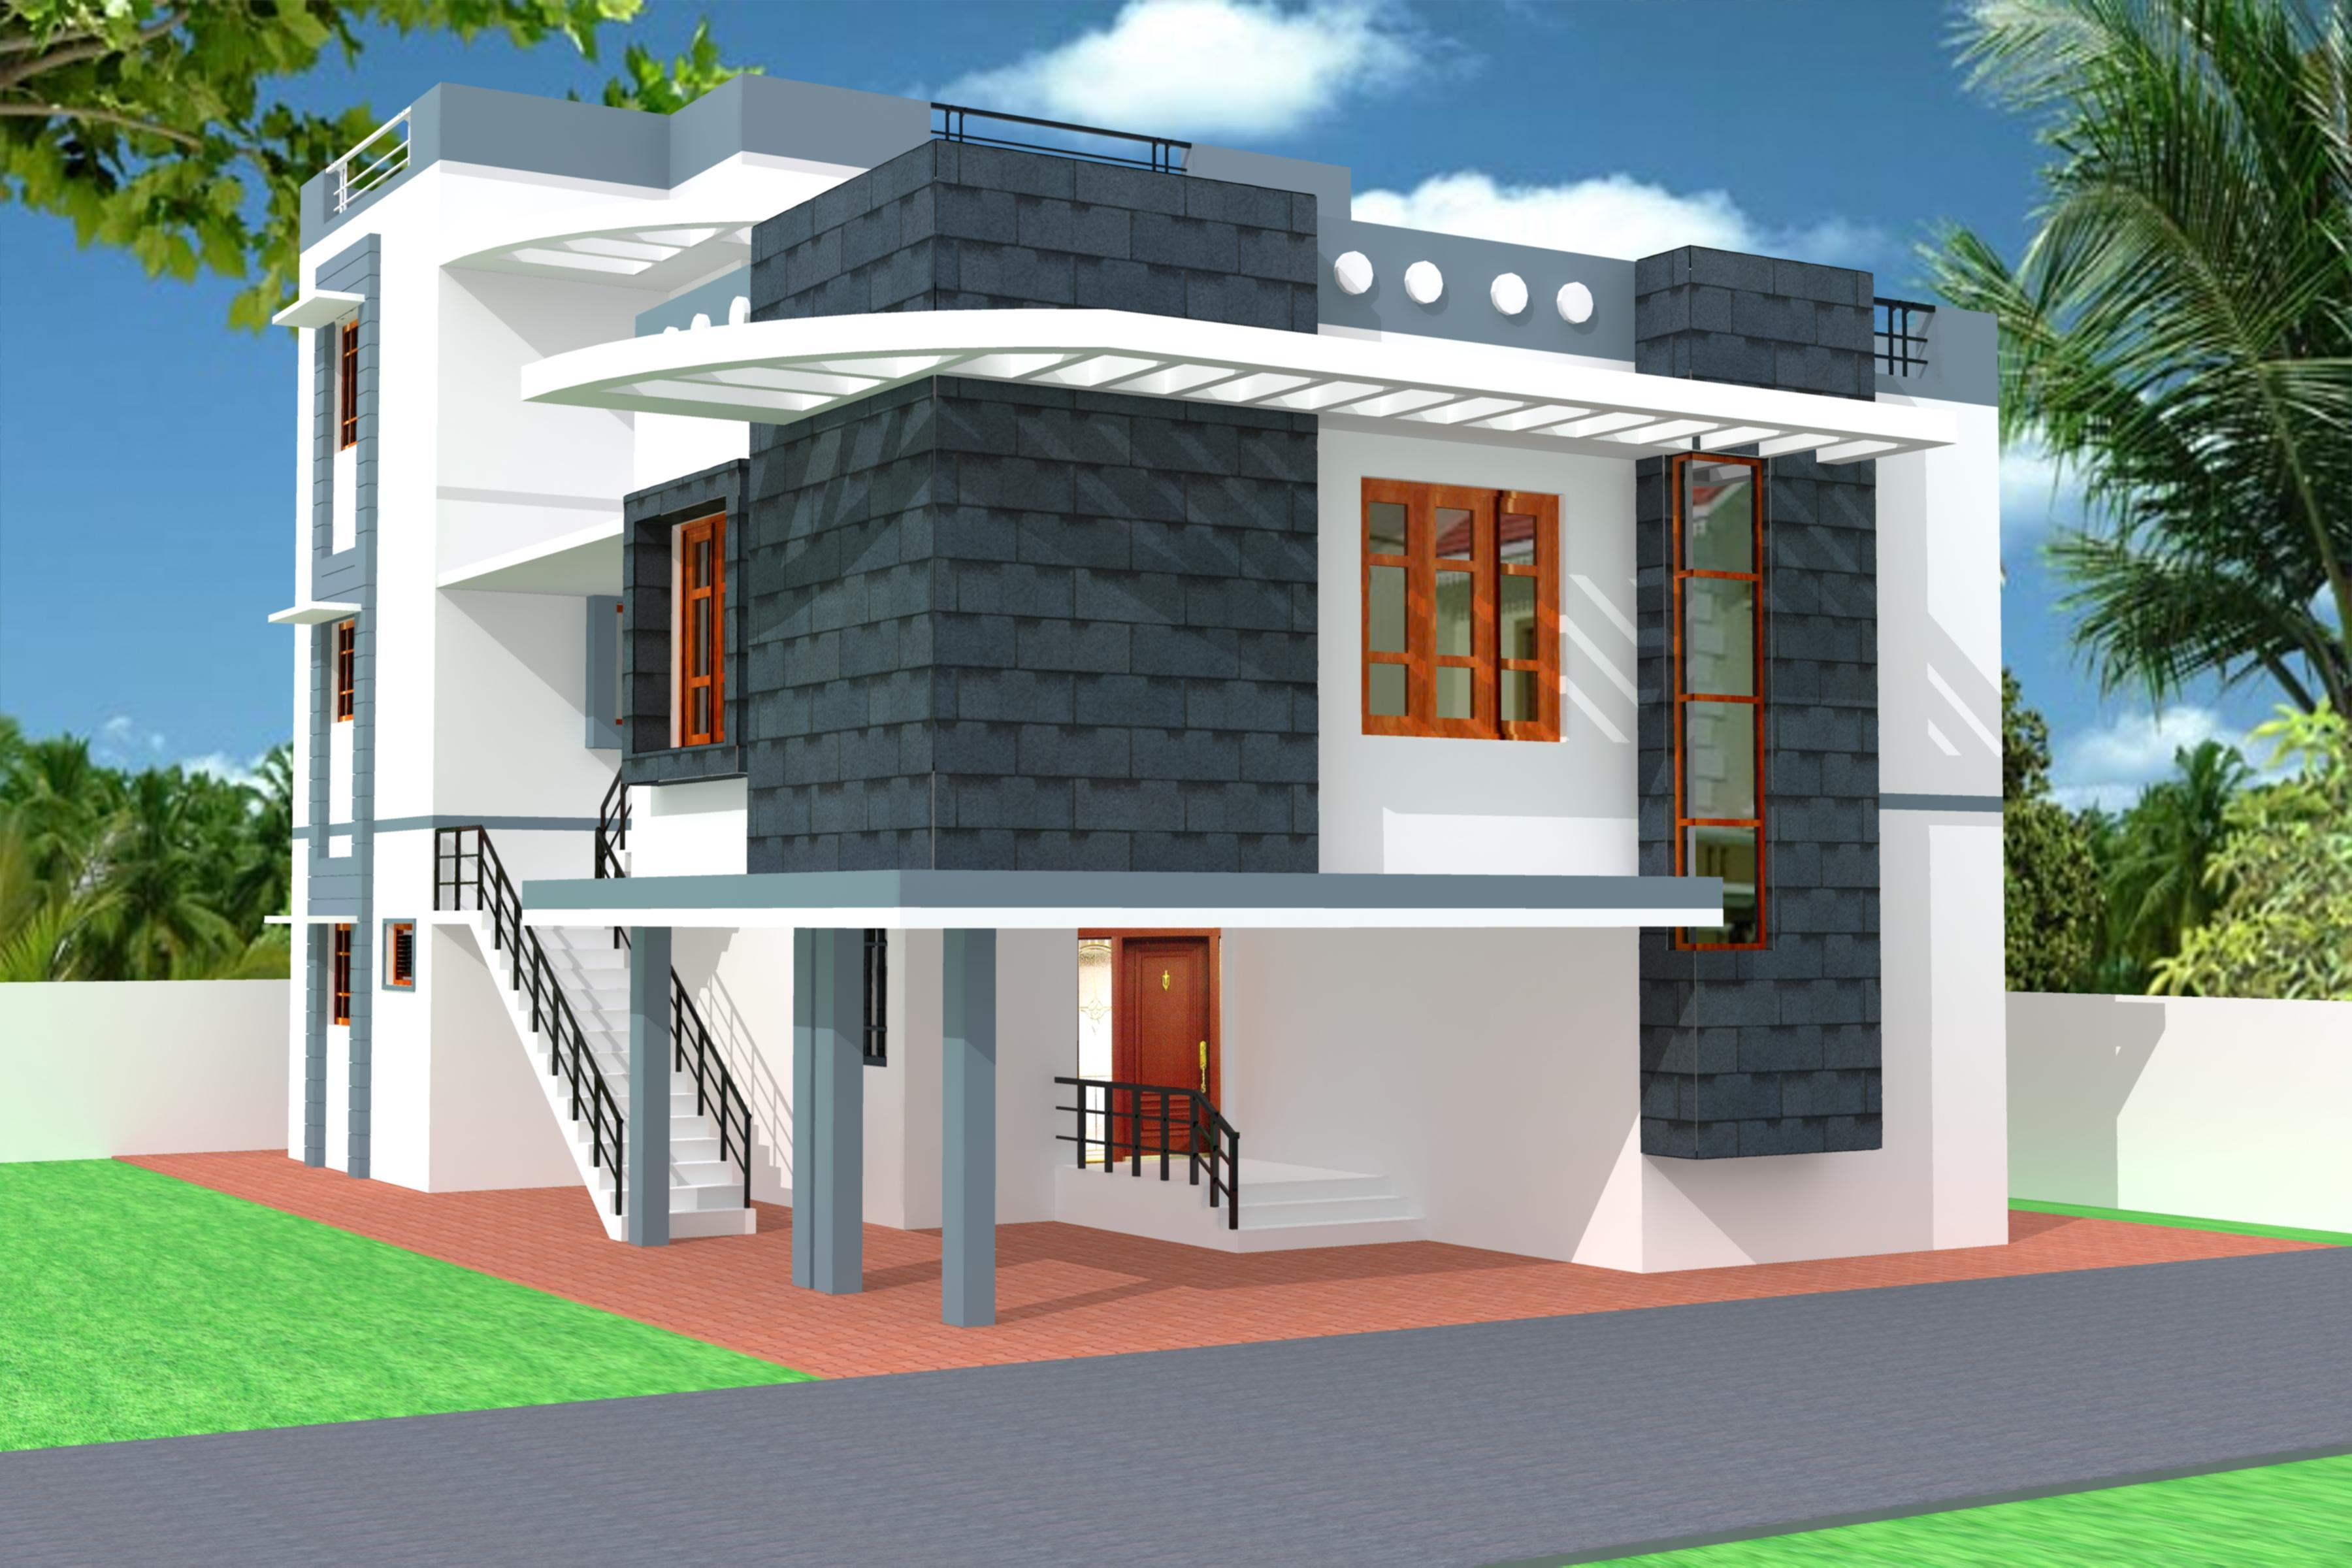 Home elevation in india homedesignpictures for 3 d home designs